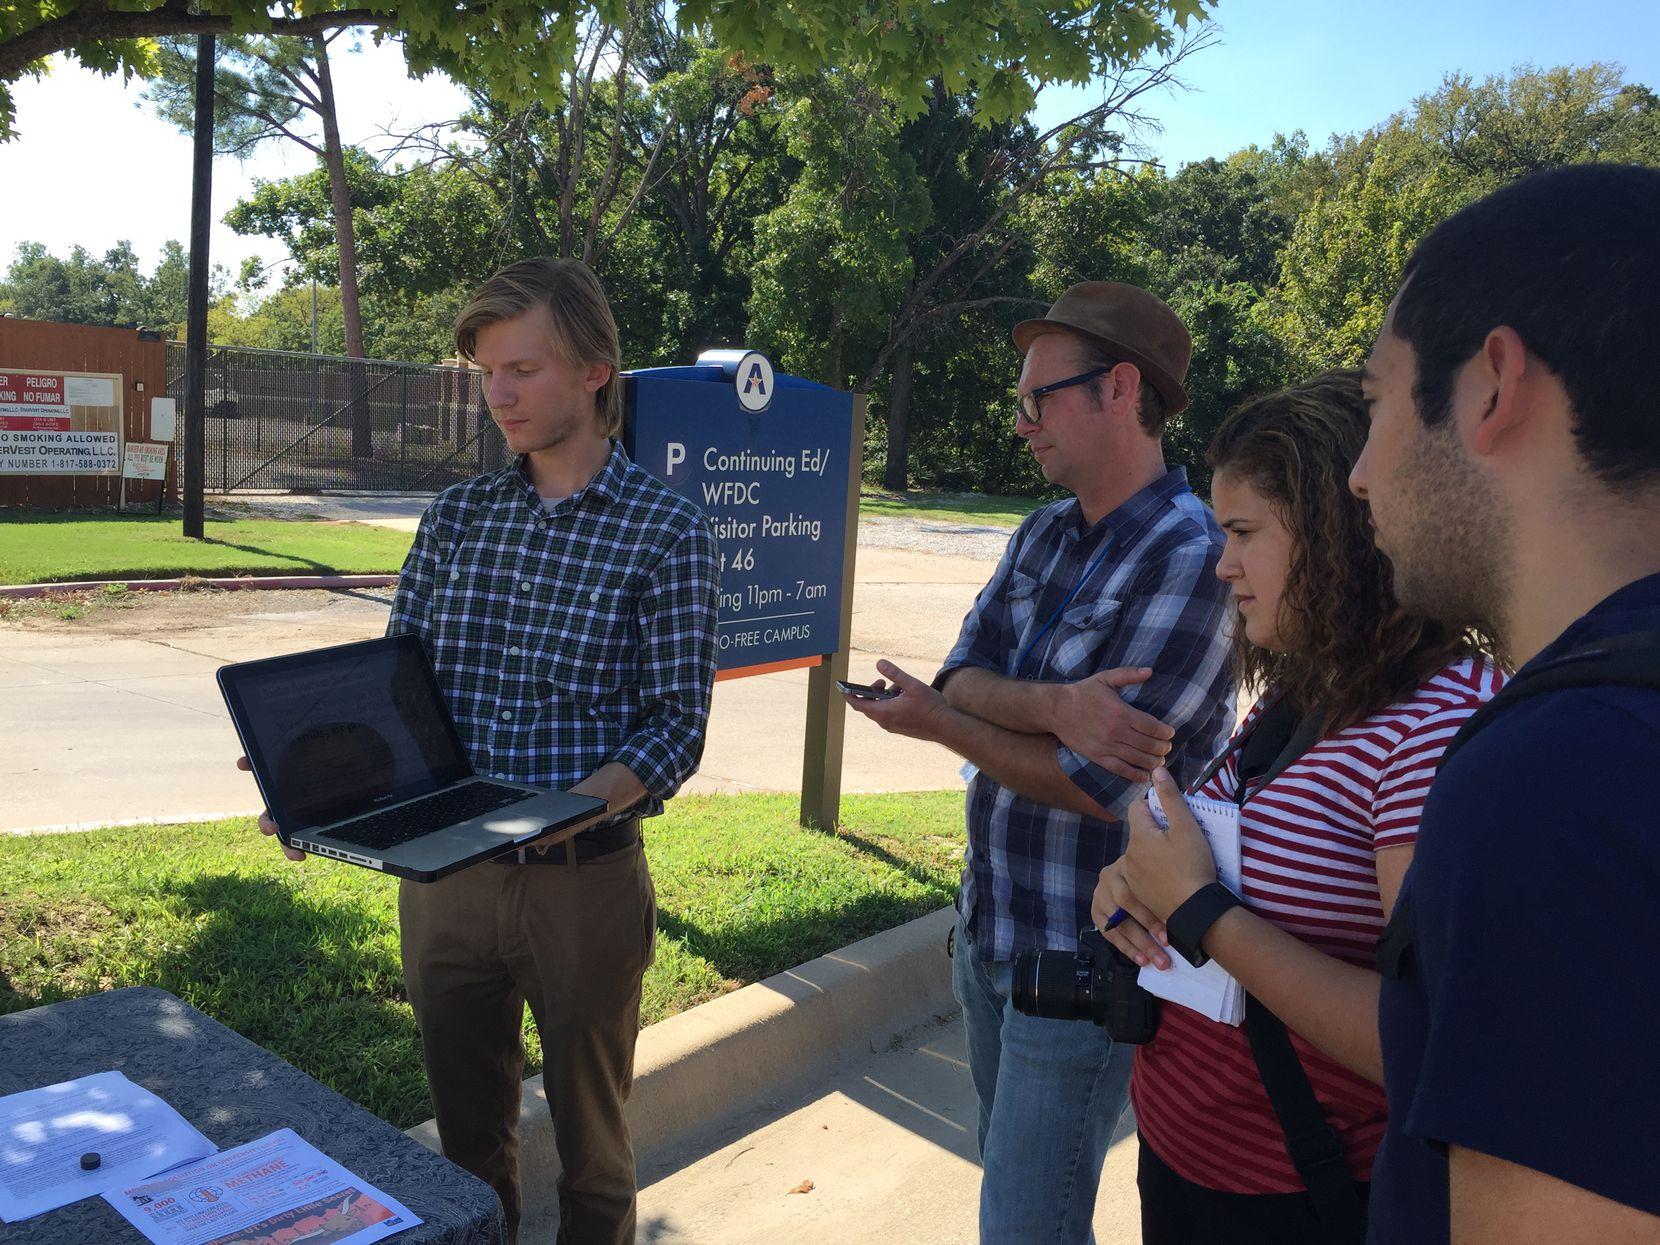 Cyrus Rautman (left) of Environment Texas and others participated in a news conference Wednesday on the University of Texas at Arlington campus. The group is urging the University of Texas system to clamp down on methane emissions at gas drilling and production sites on UT land.